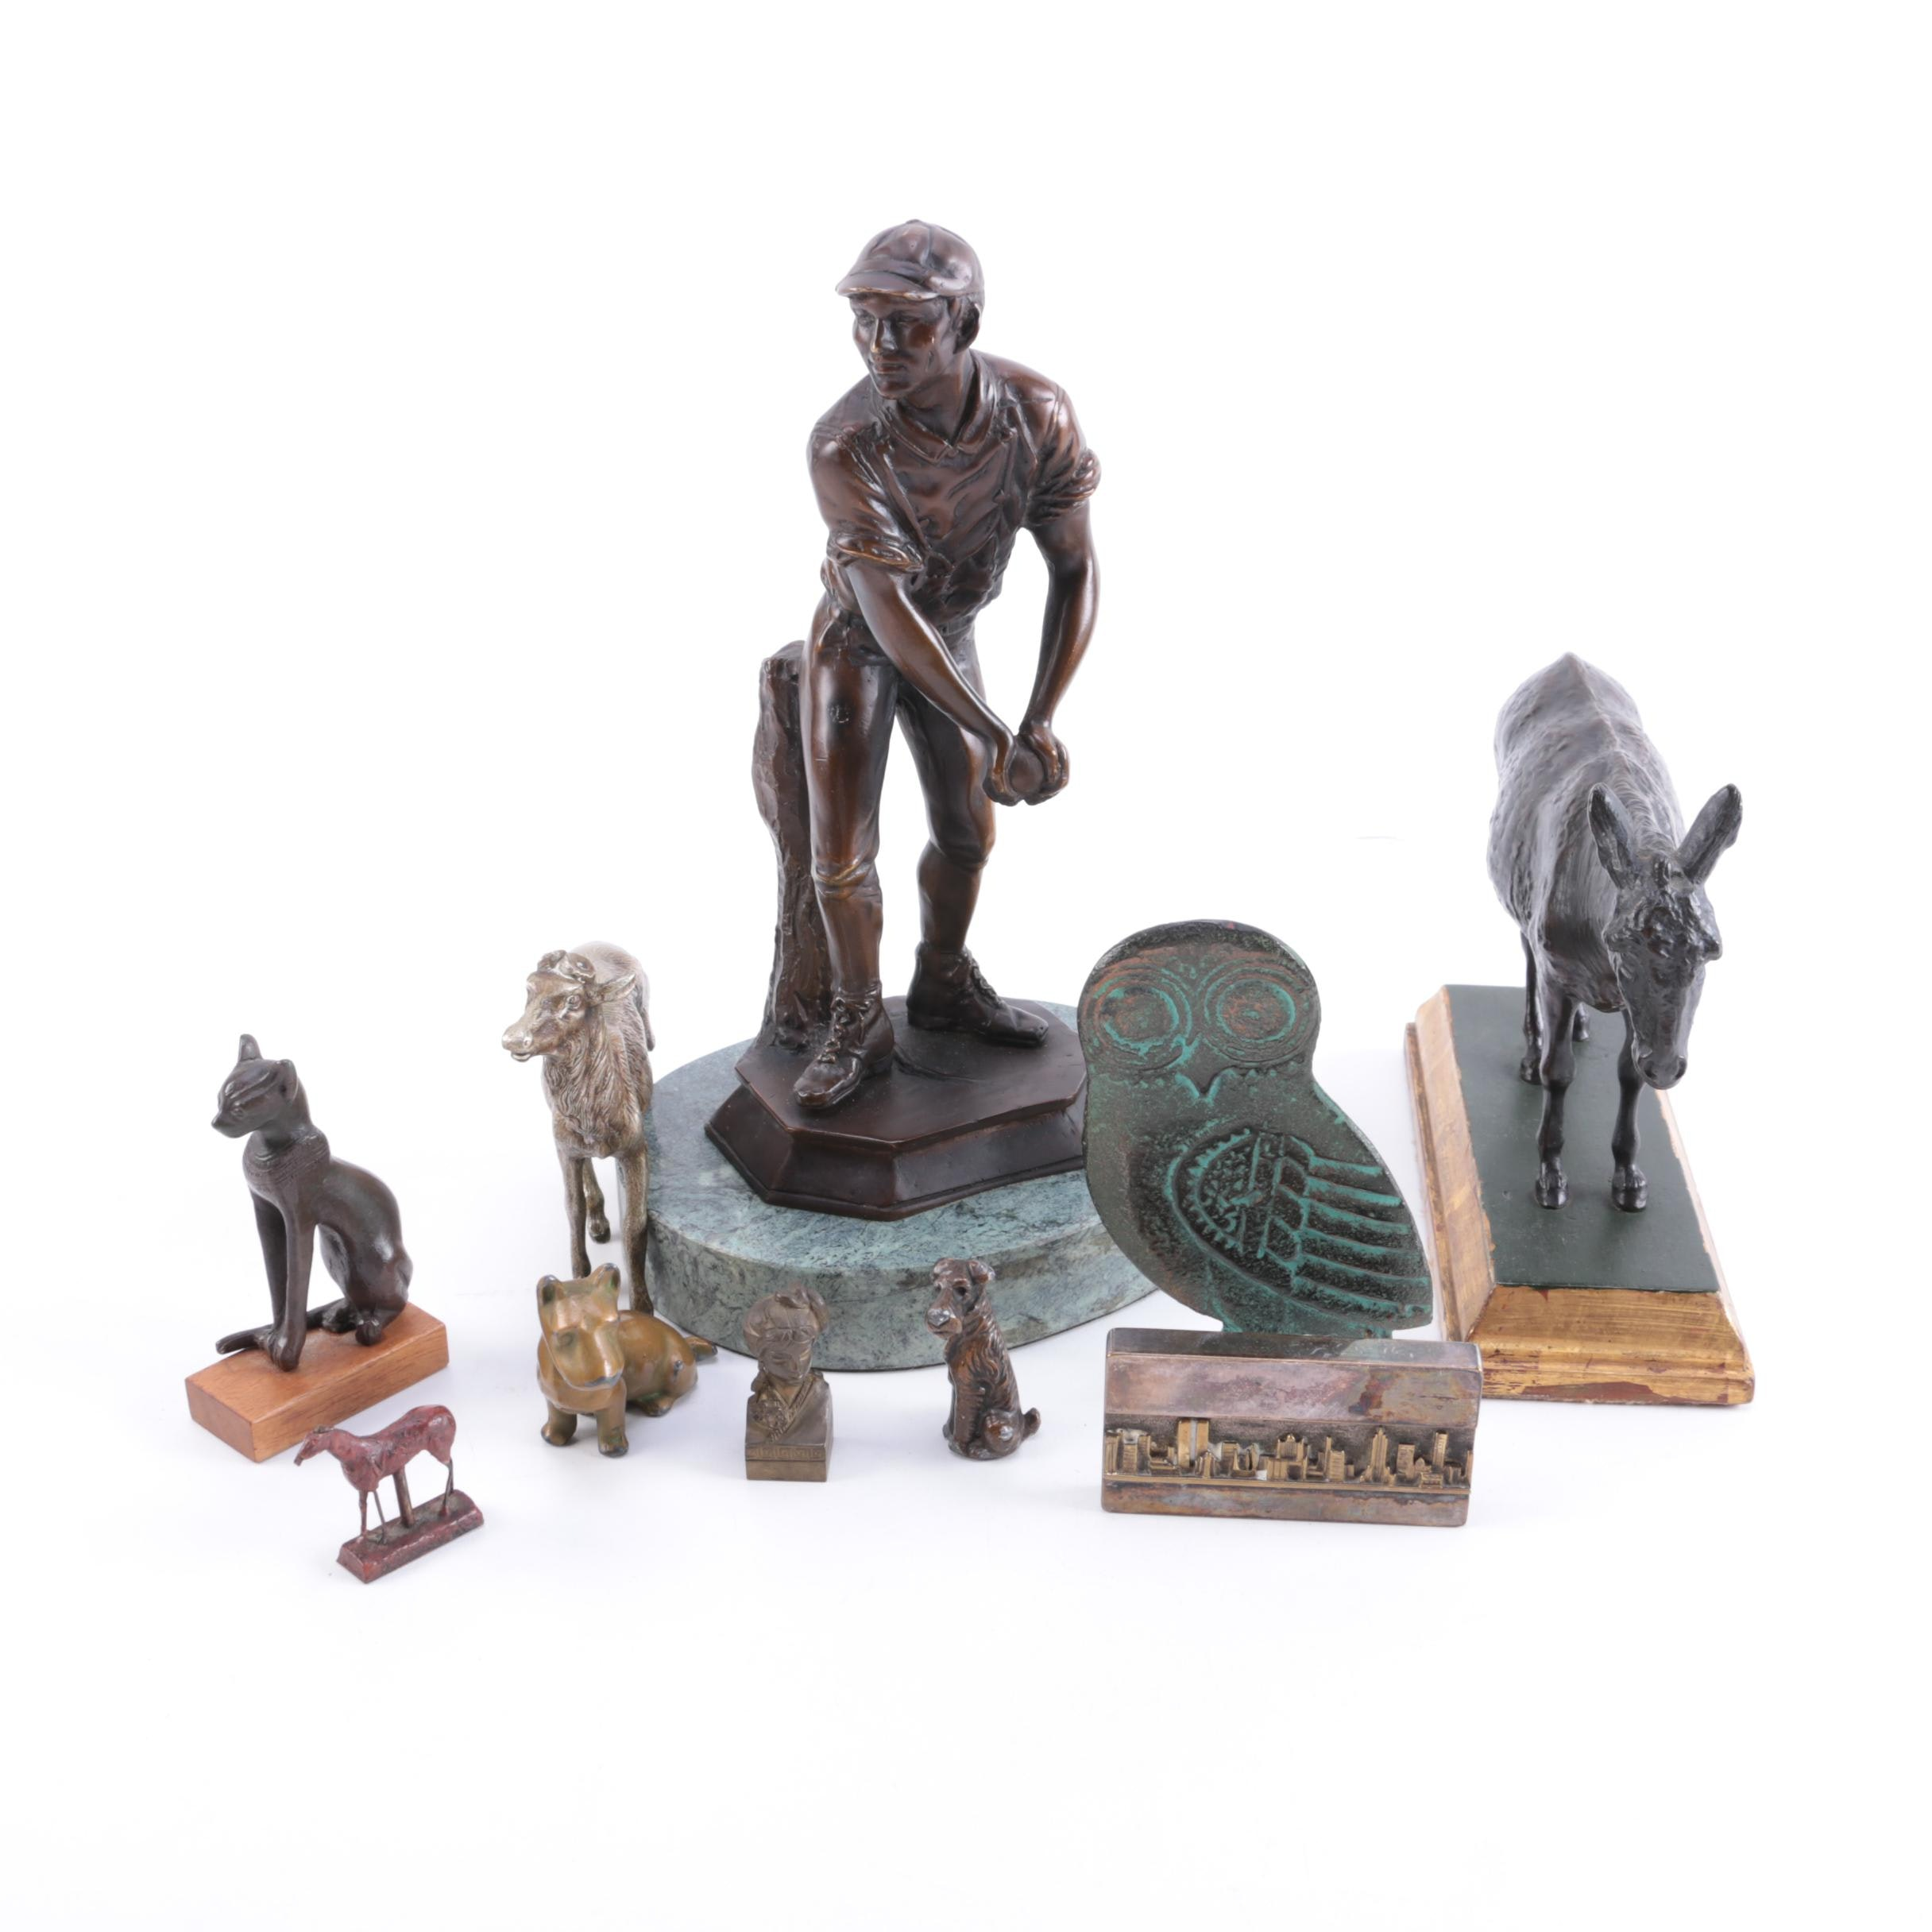 Assorted Brass and Wood Figurines